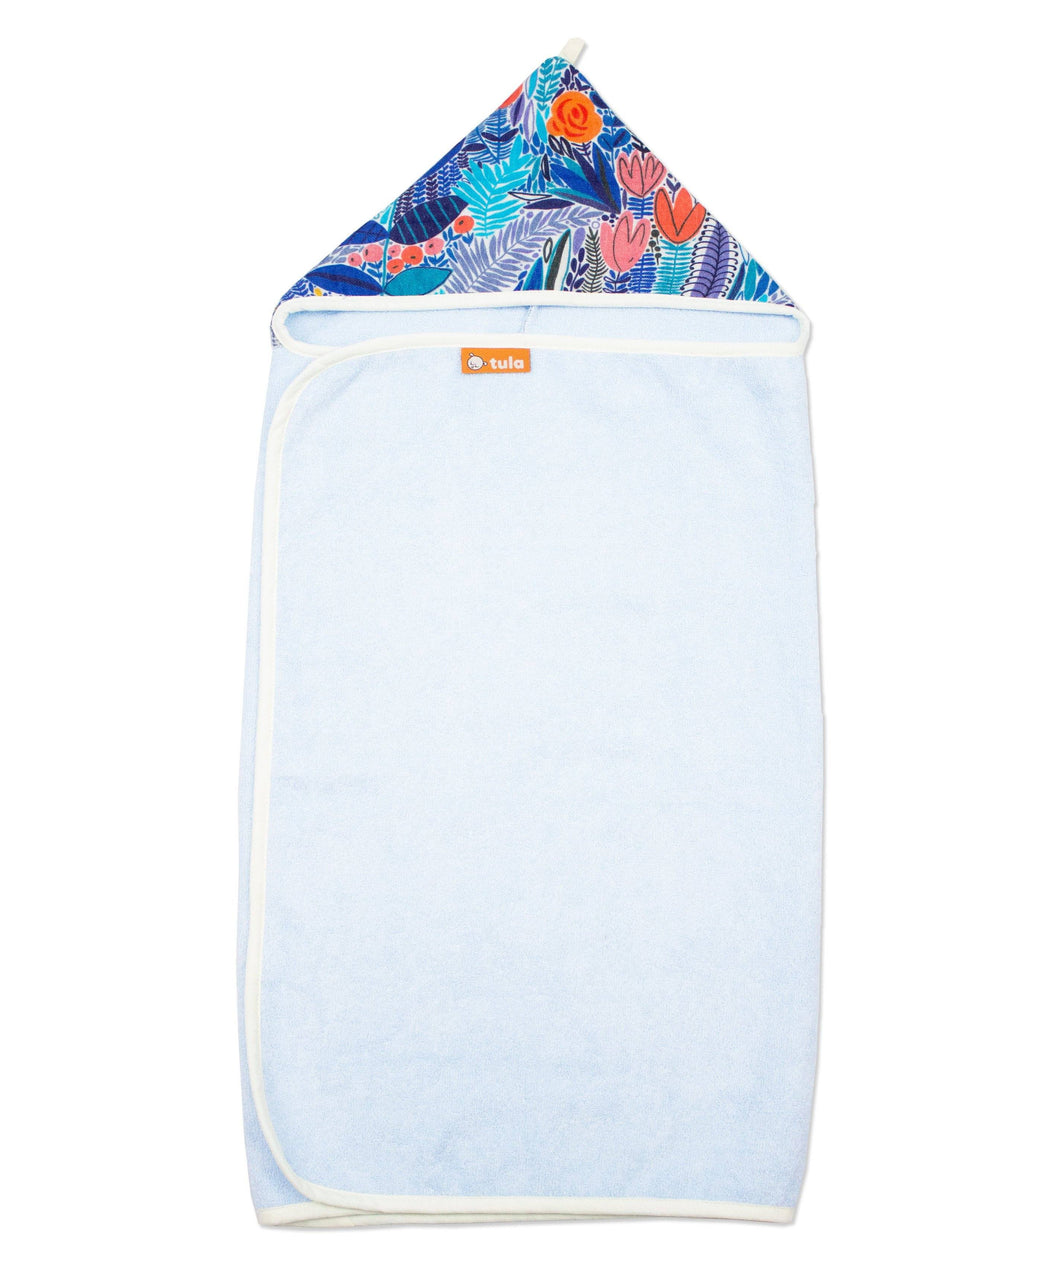 Mystic Meadow - Tula Hooded Towel